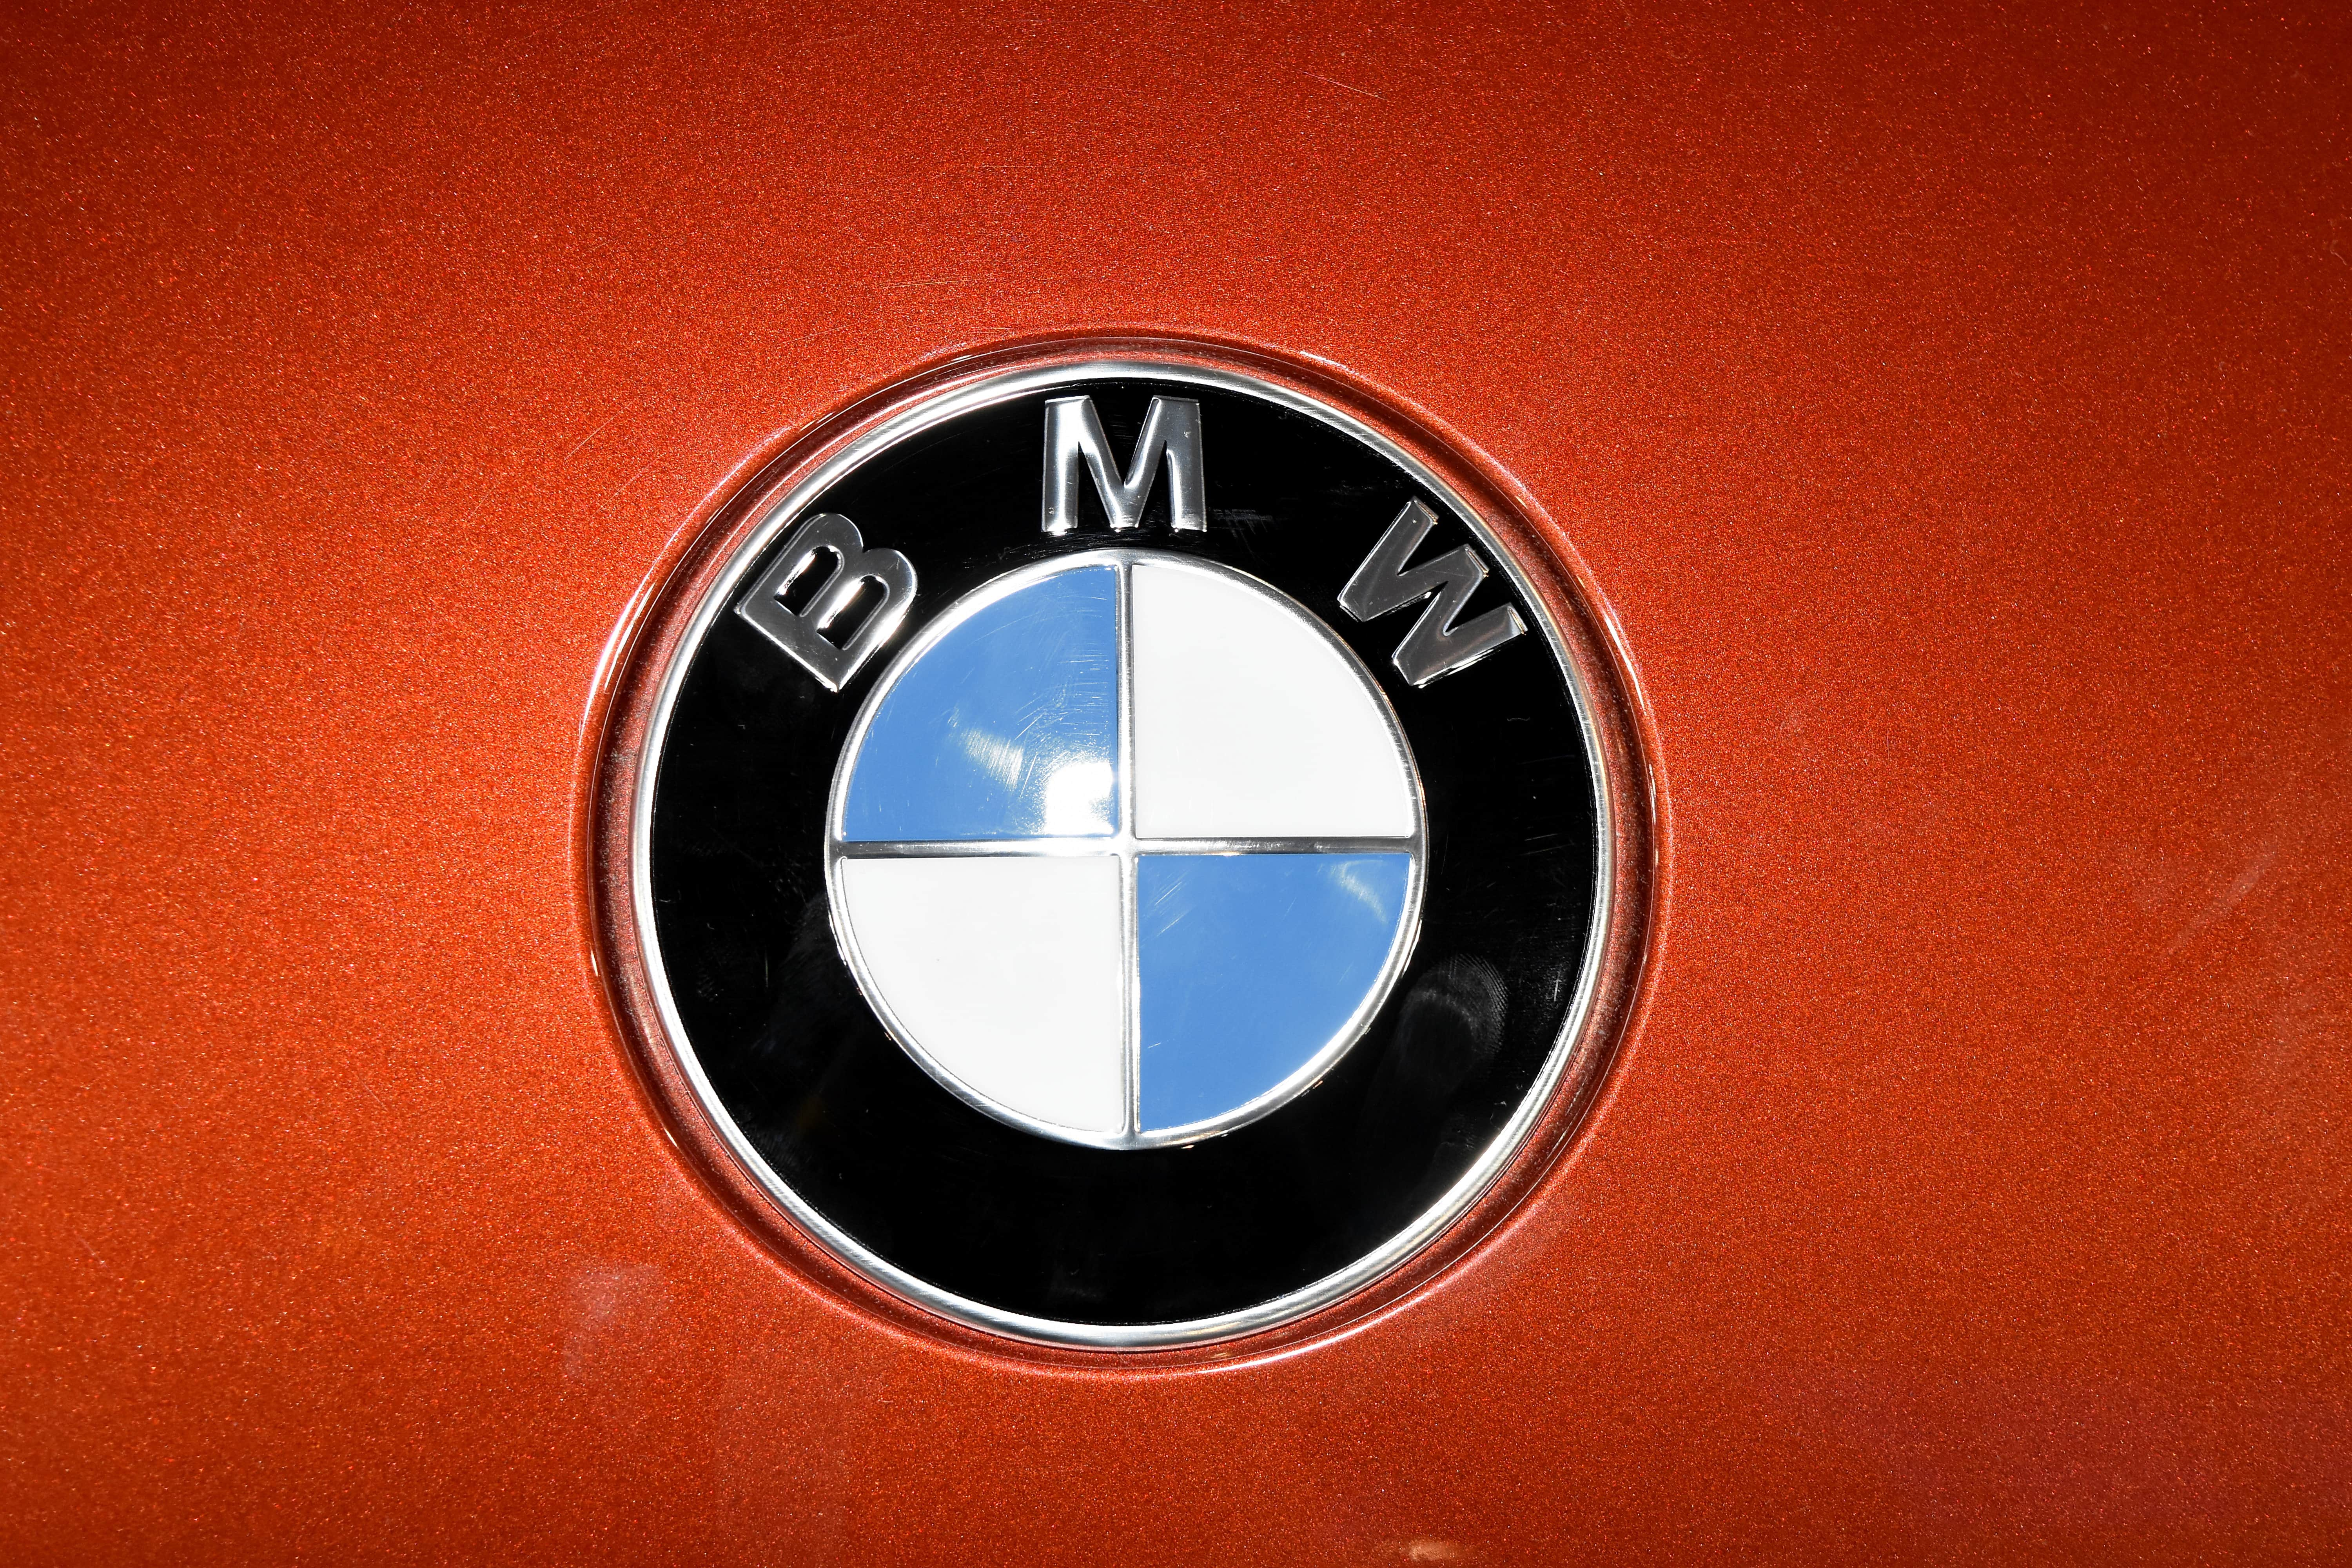 Free picture: BMW sign, chrome, luxury, symbol, label ...